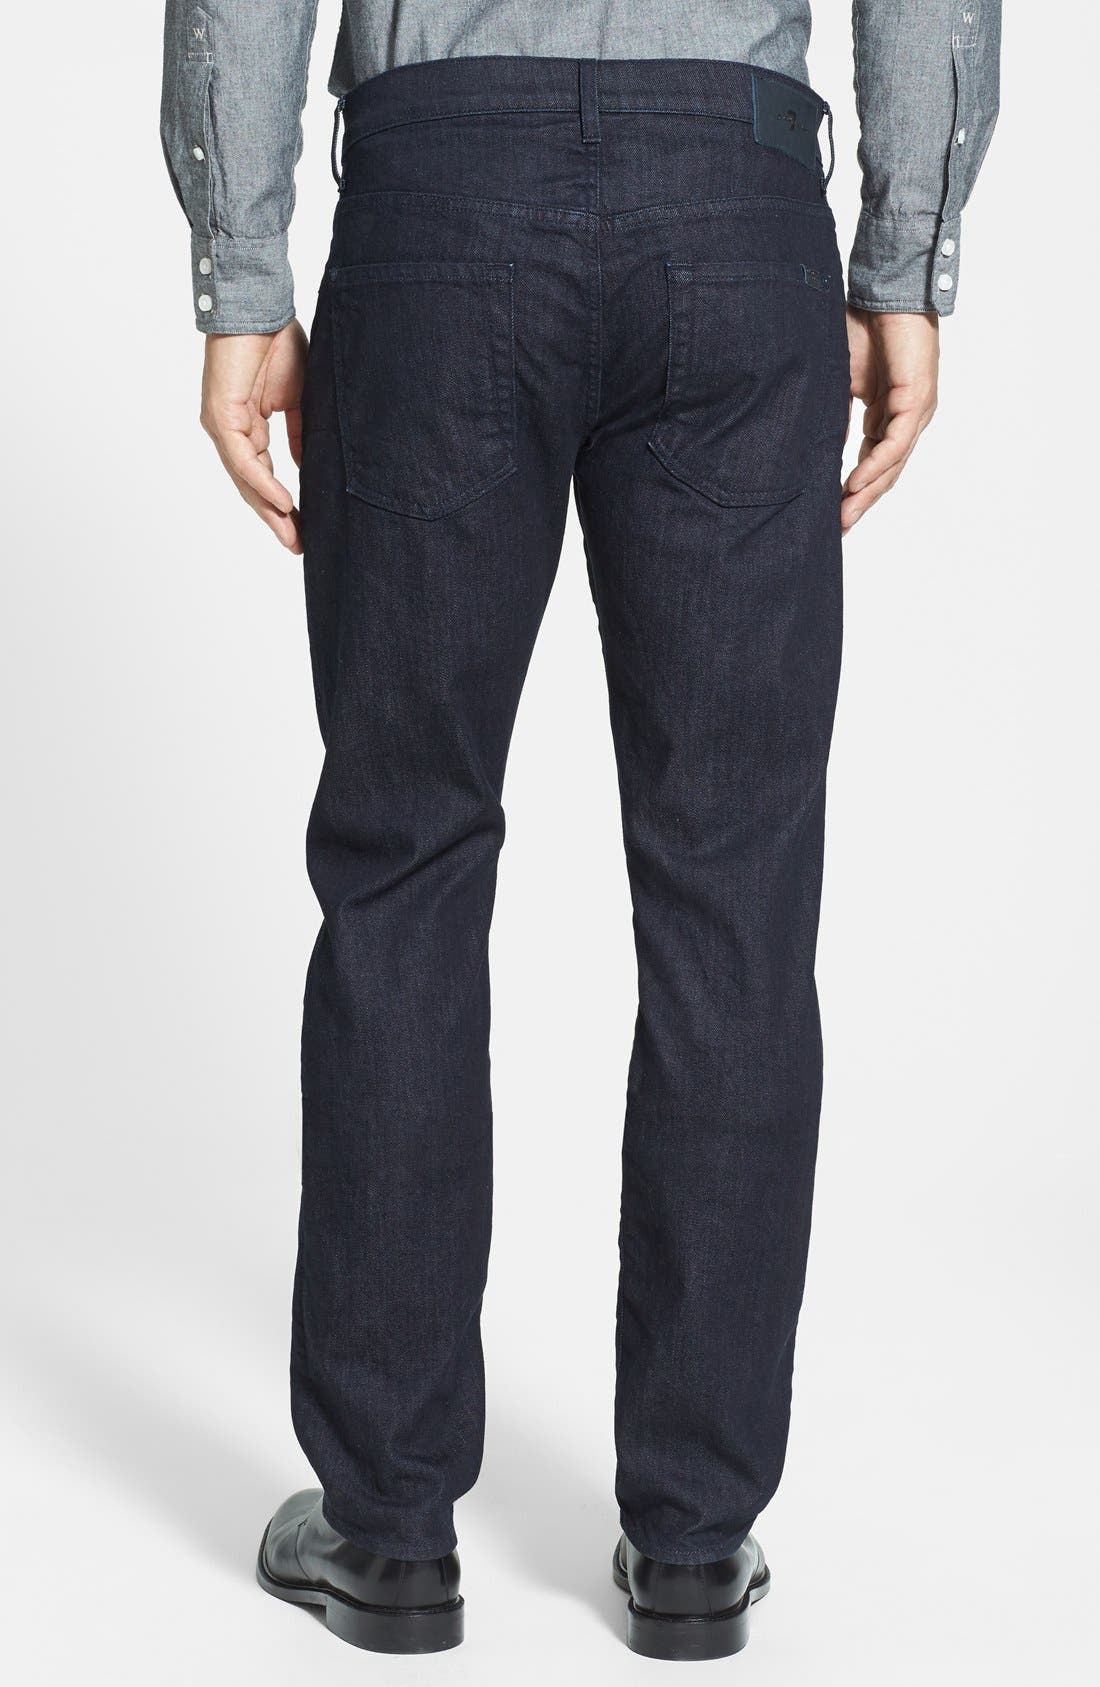 The Straight - Luxe Performance Slim Straight Leg Jeans,                             Alternate thumbnail 3, color,                             DEEP WELL